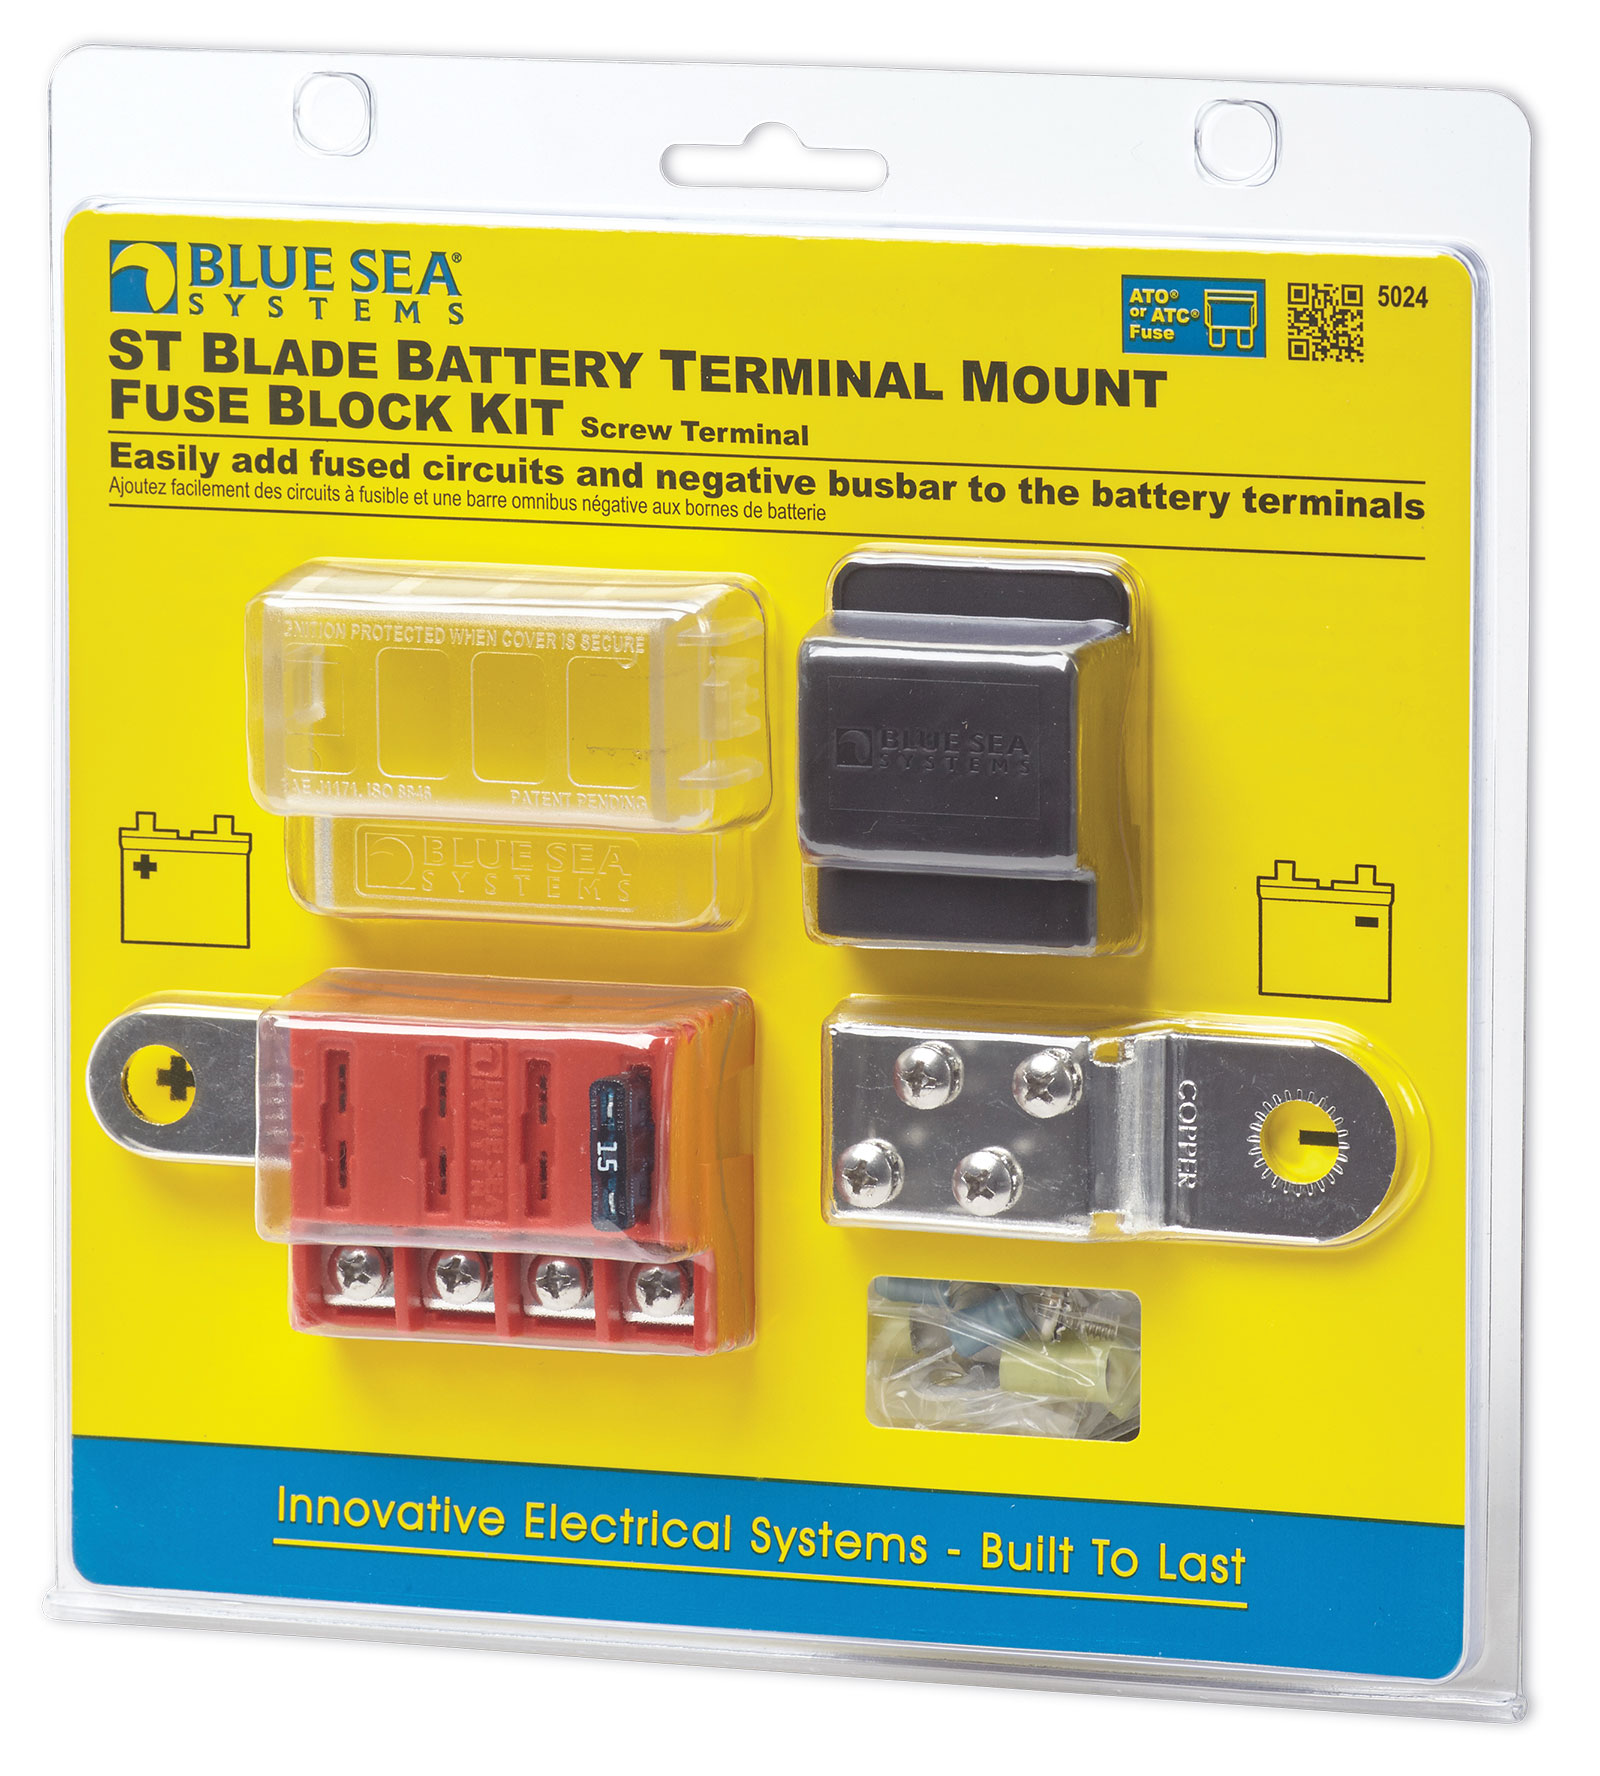 St Blade Battery Terminal Mount Fuse Block Kit Blue Sea Systems Electical Box Fuses Product Image